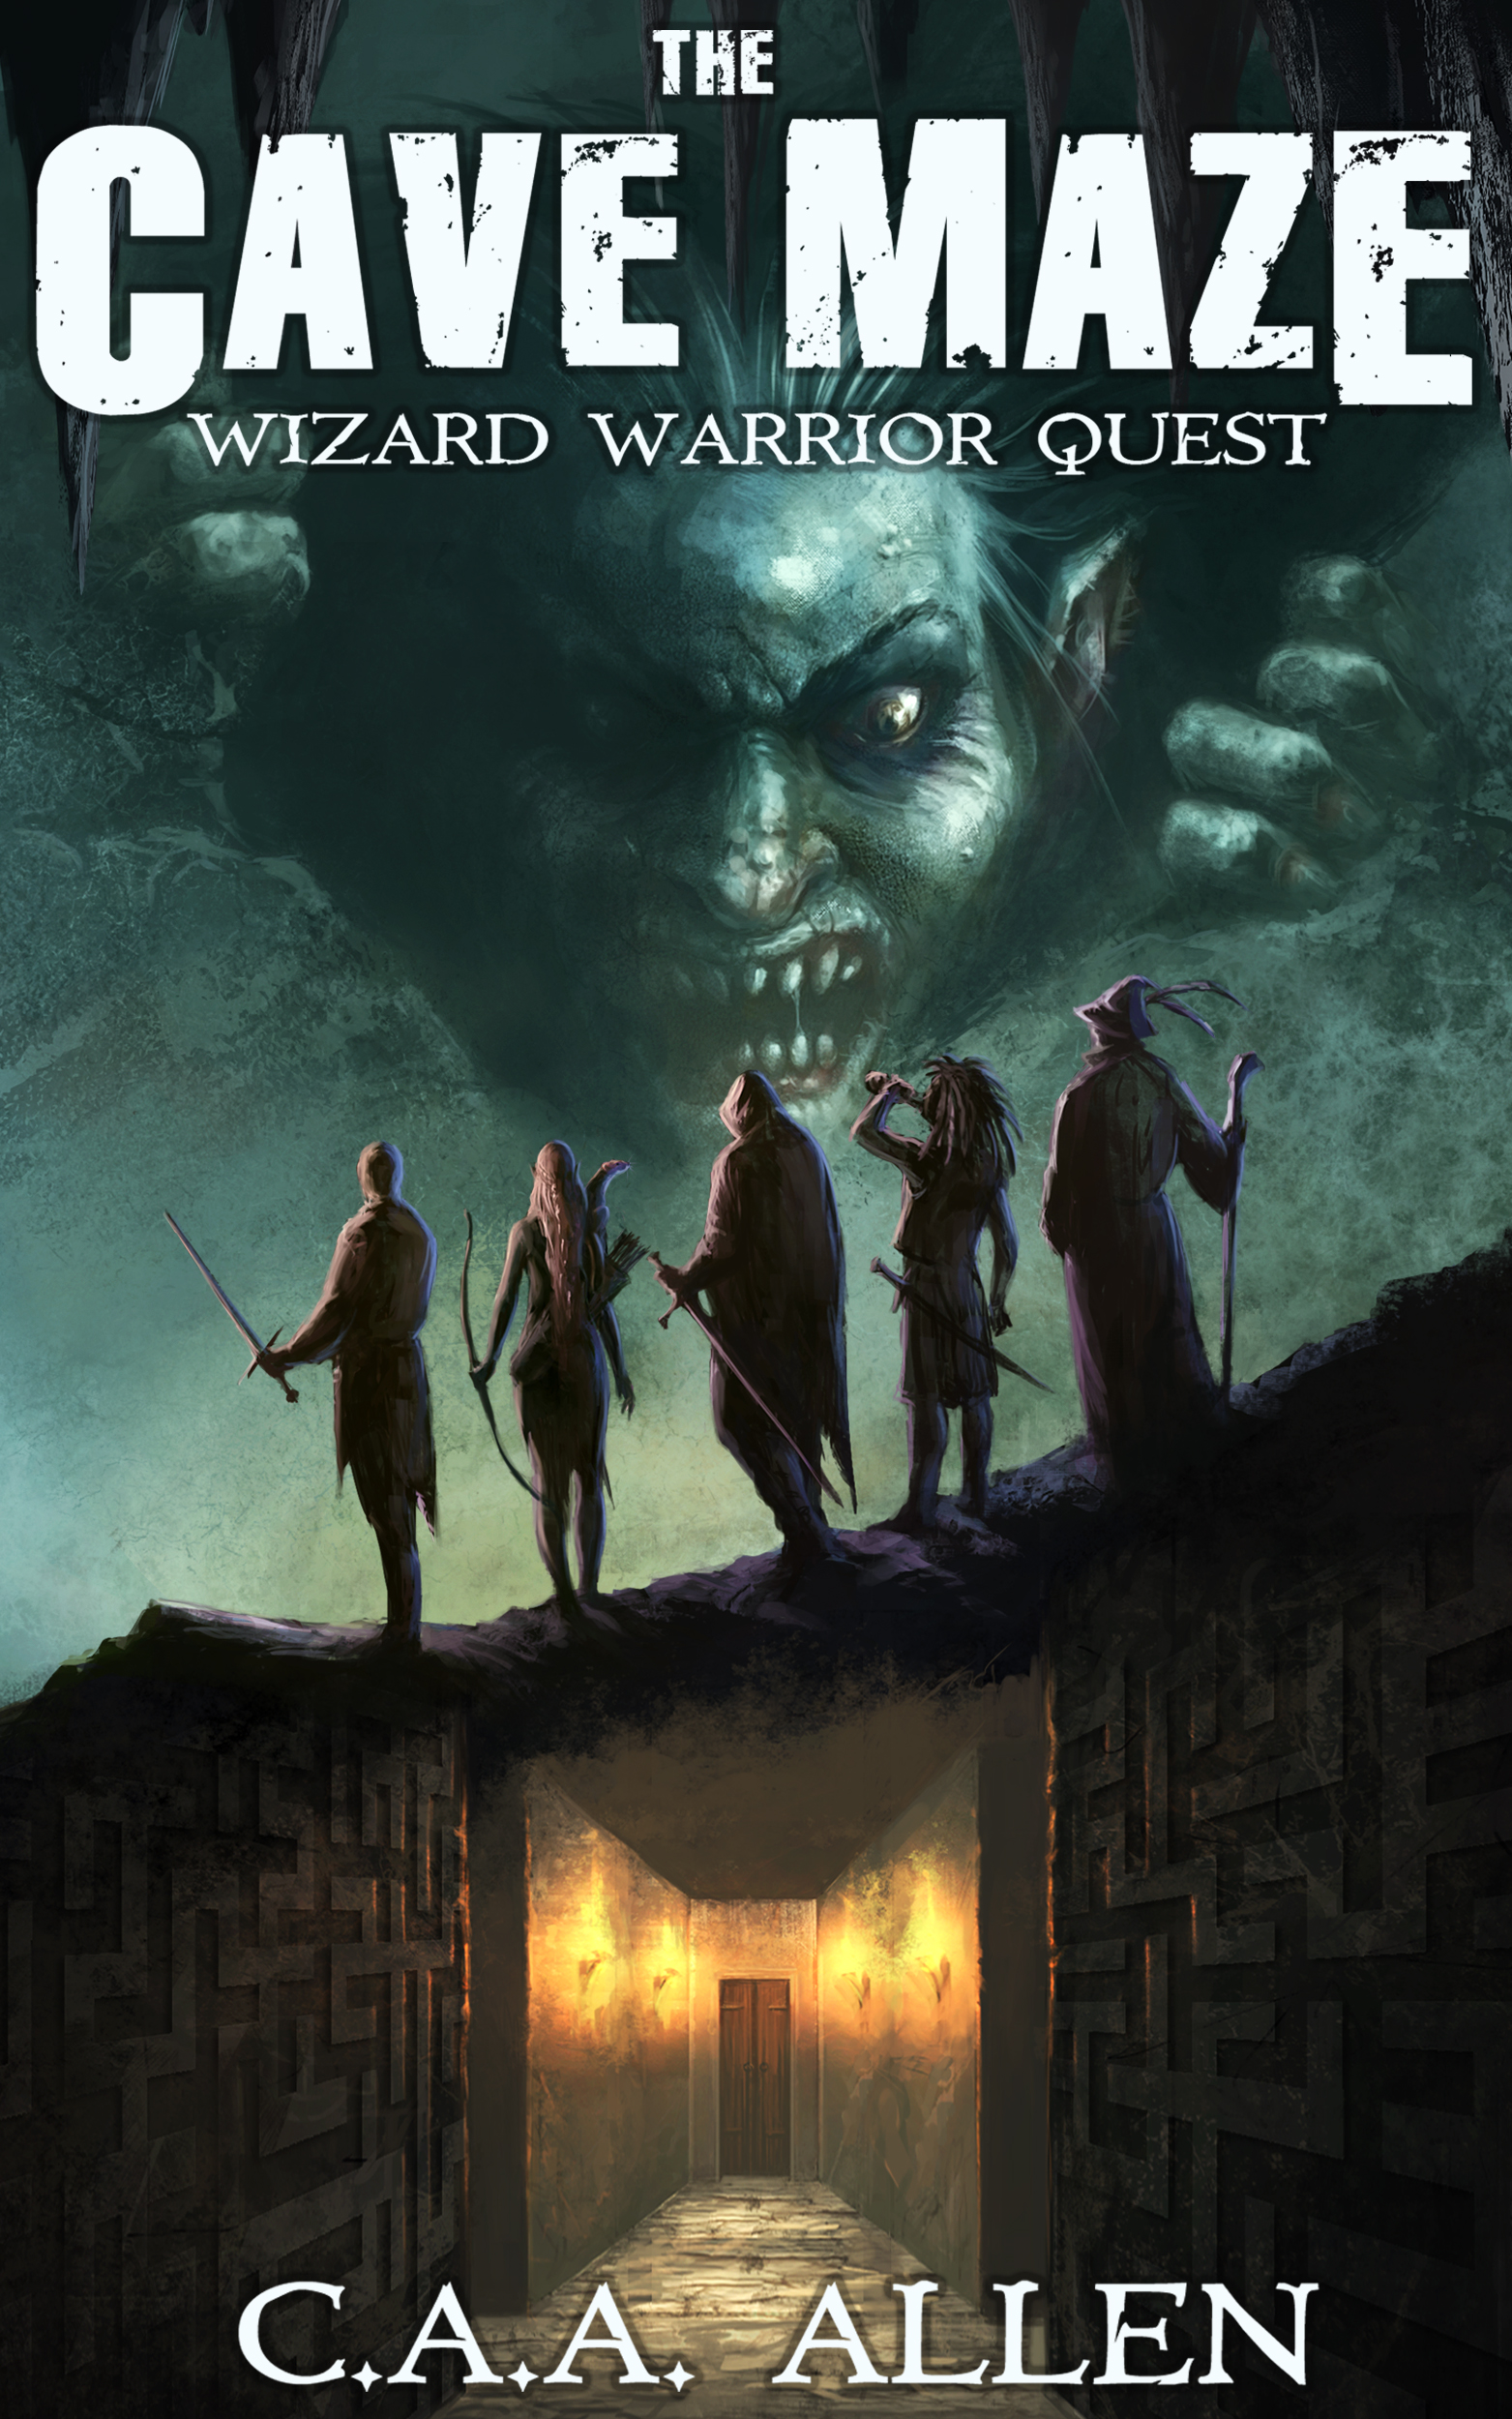 THE_CAVE_MAZE_E_BOOK_COVER_FINAL